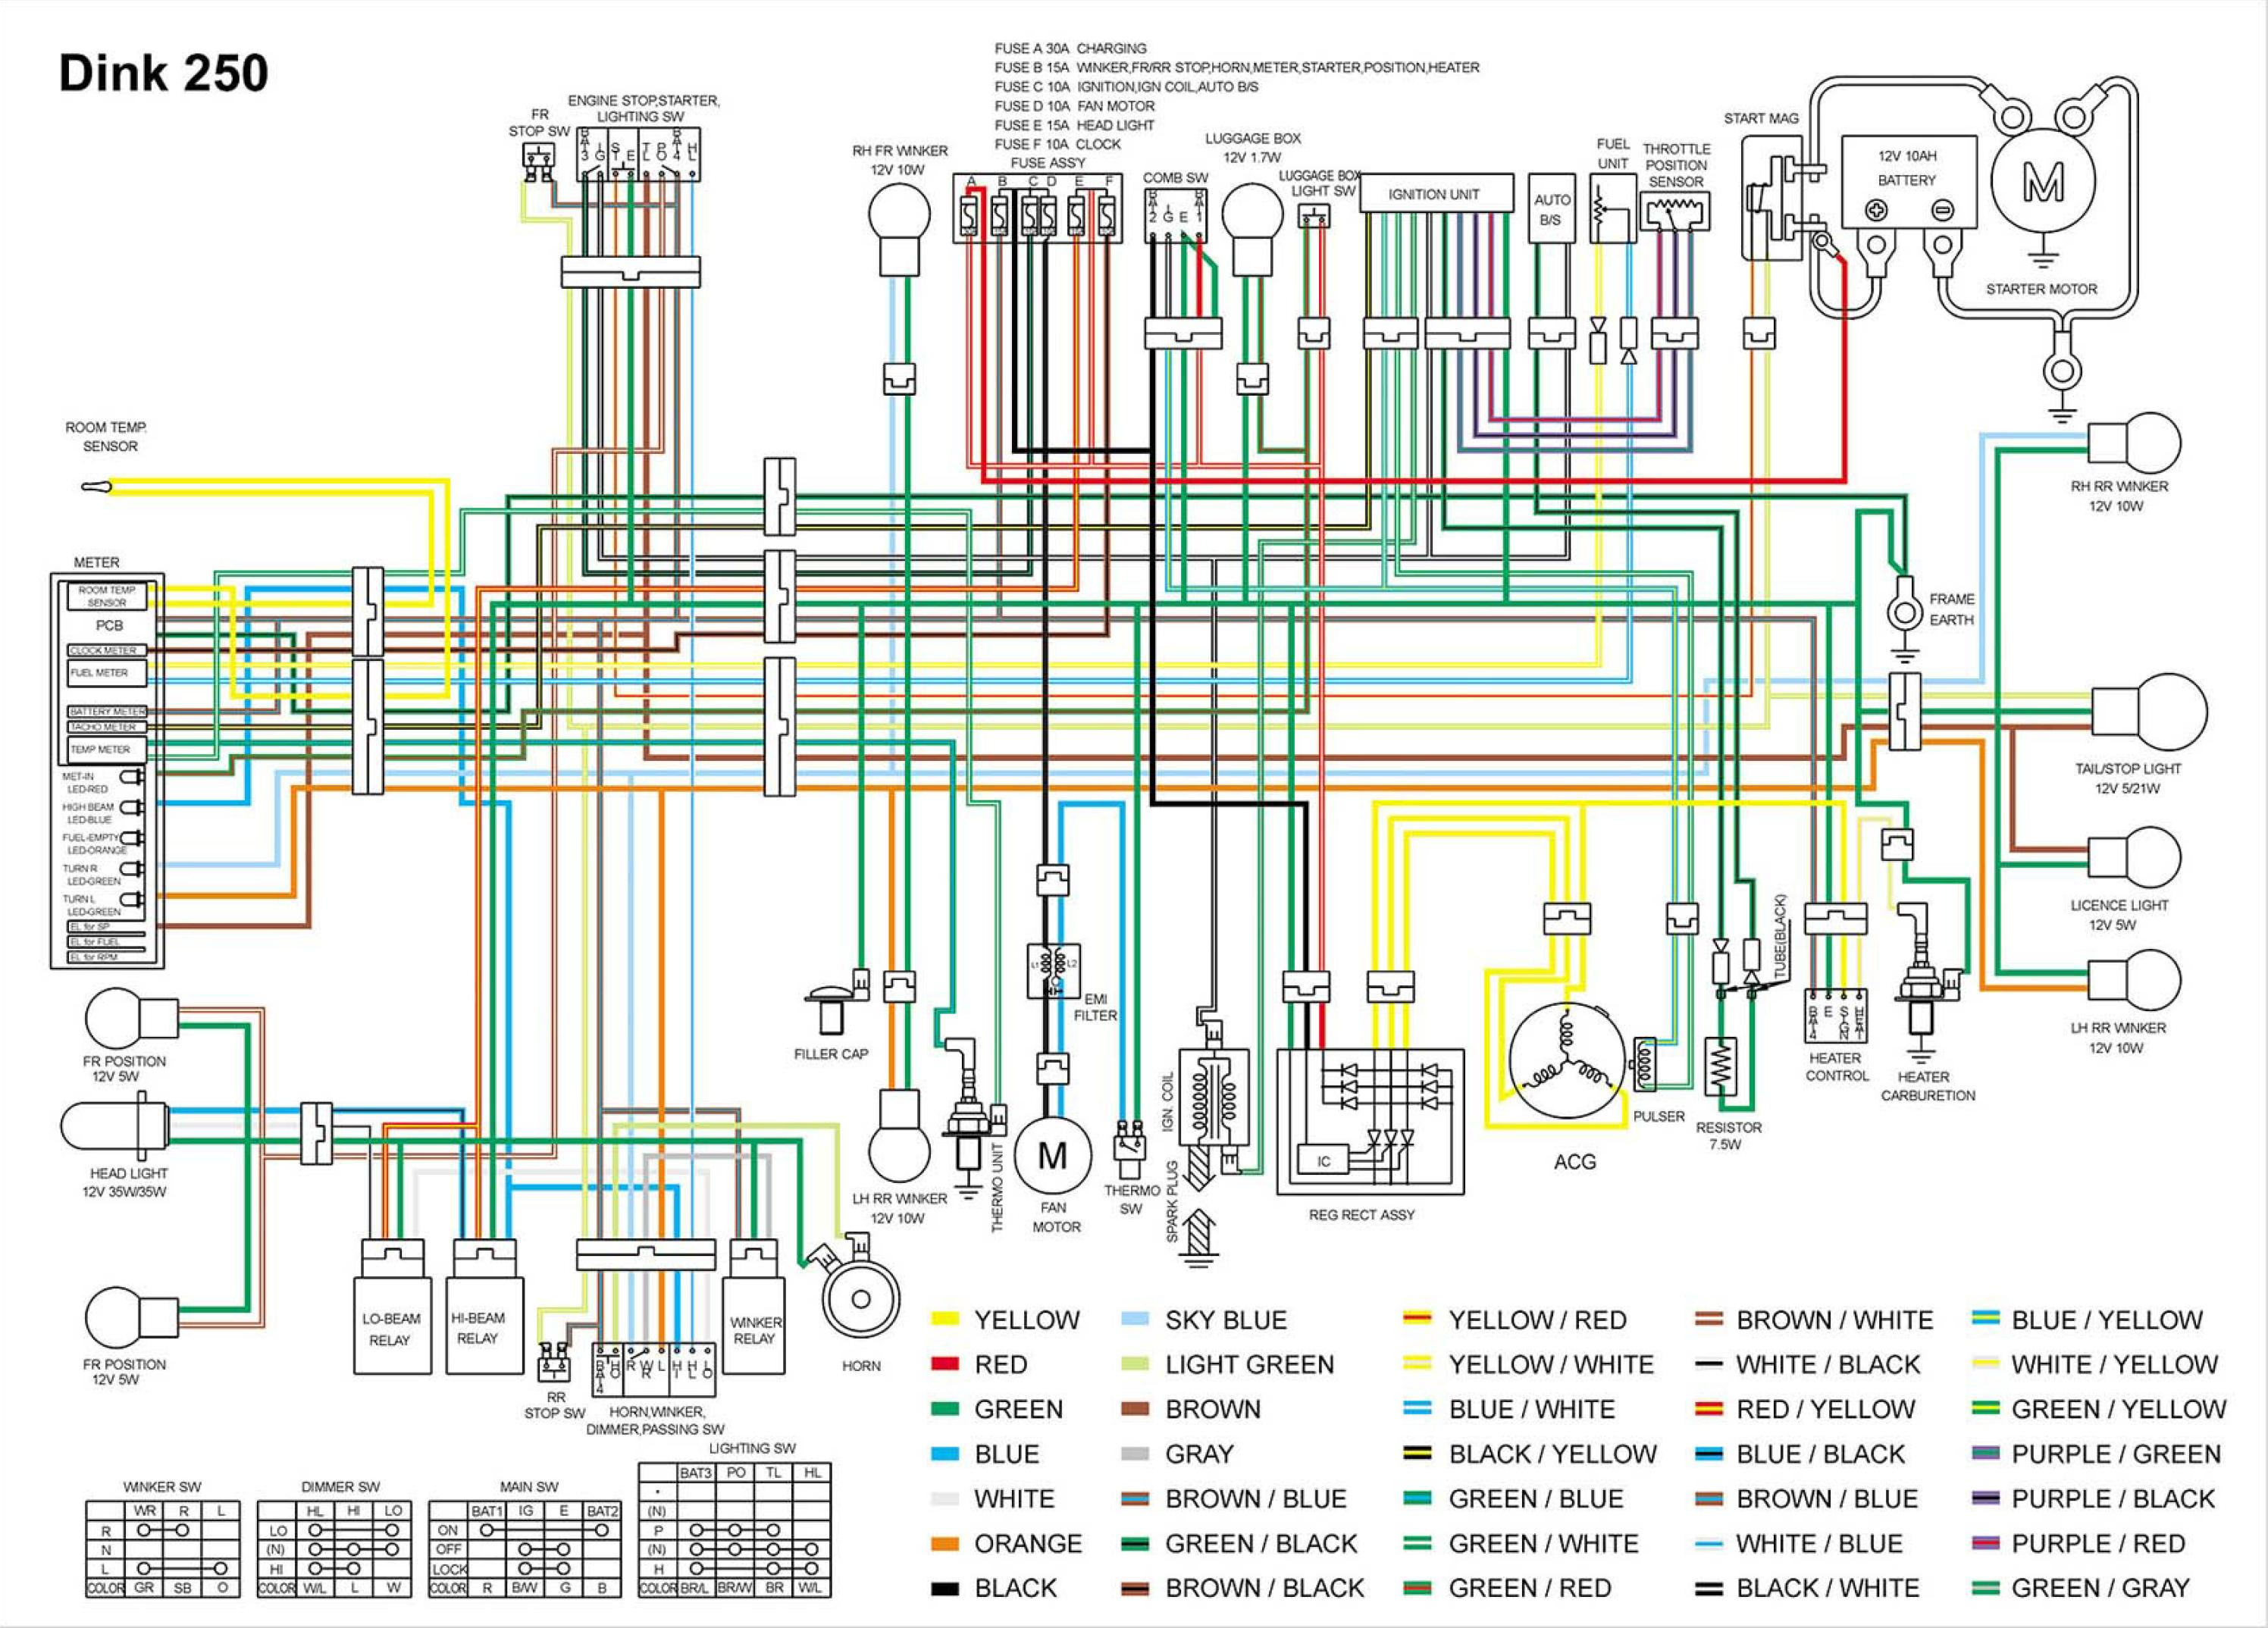 Kymco Agility 50 Wiring Diagram - Wiring Diagram Online on 50cc scooter regulator, 2002 dodge ram headlight wiring diagram, chinese 4 wheeler wiring diagram, 6 pin cdi wiring diagram, electric motorcycle wiring diagram, chinese scooter diagram, 50cc scooters cheap, chinese mini chopper wiring diagram, kymco scooter parts diagram, 50cc scooter carburetor diagram, 50cc scooter repair, 50cc scooter engine, cdi ignition wiring diagram, moped wiring diagram, 50cc scooter body diagram, 50cc vip scooter parts, gy6 cdi wiring diagram, 50cc scooter coil, future champion scooter diagram, electric scooter diagram,